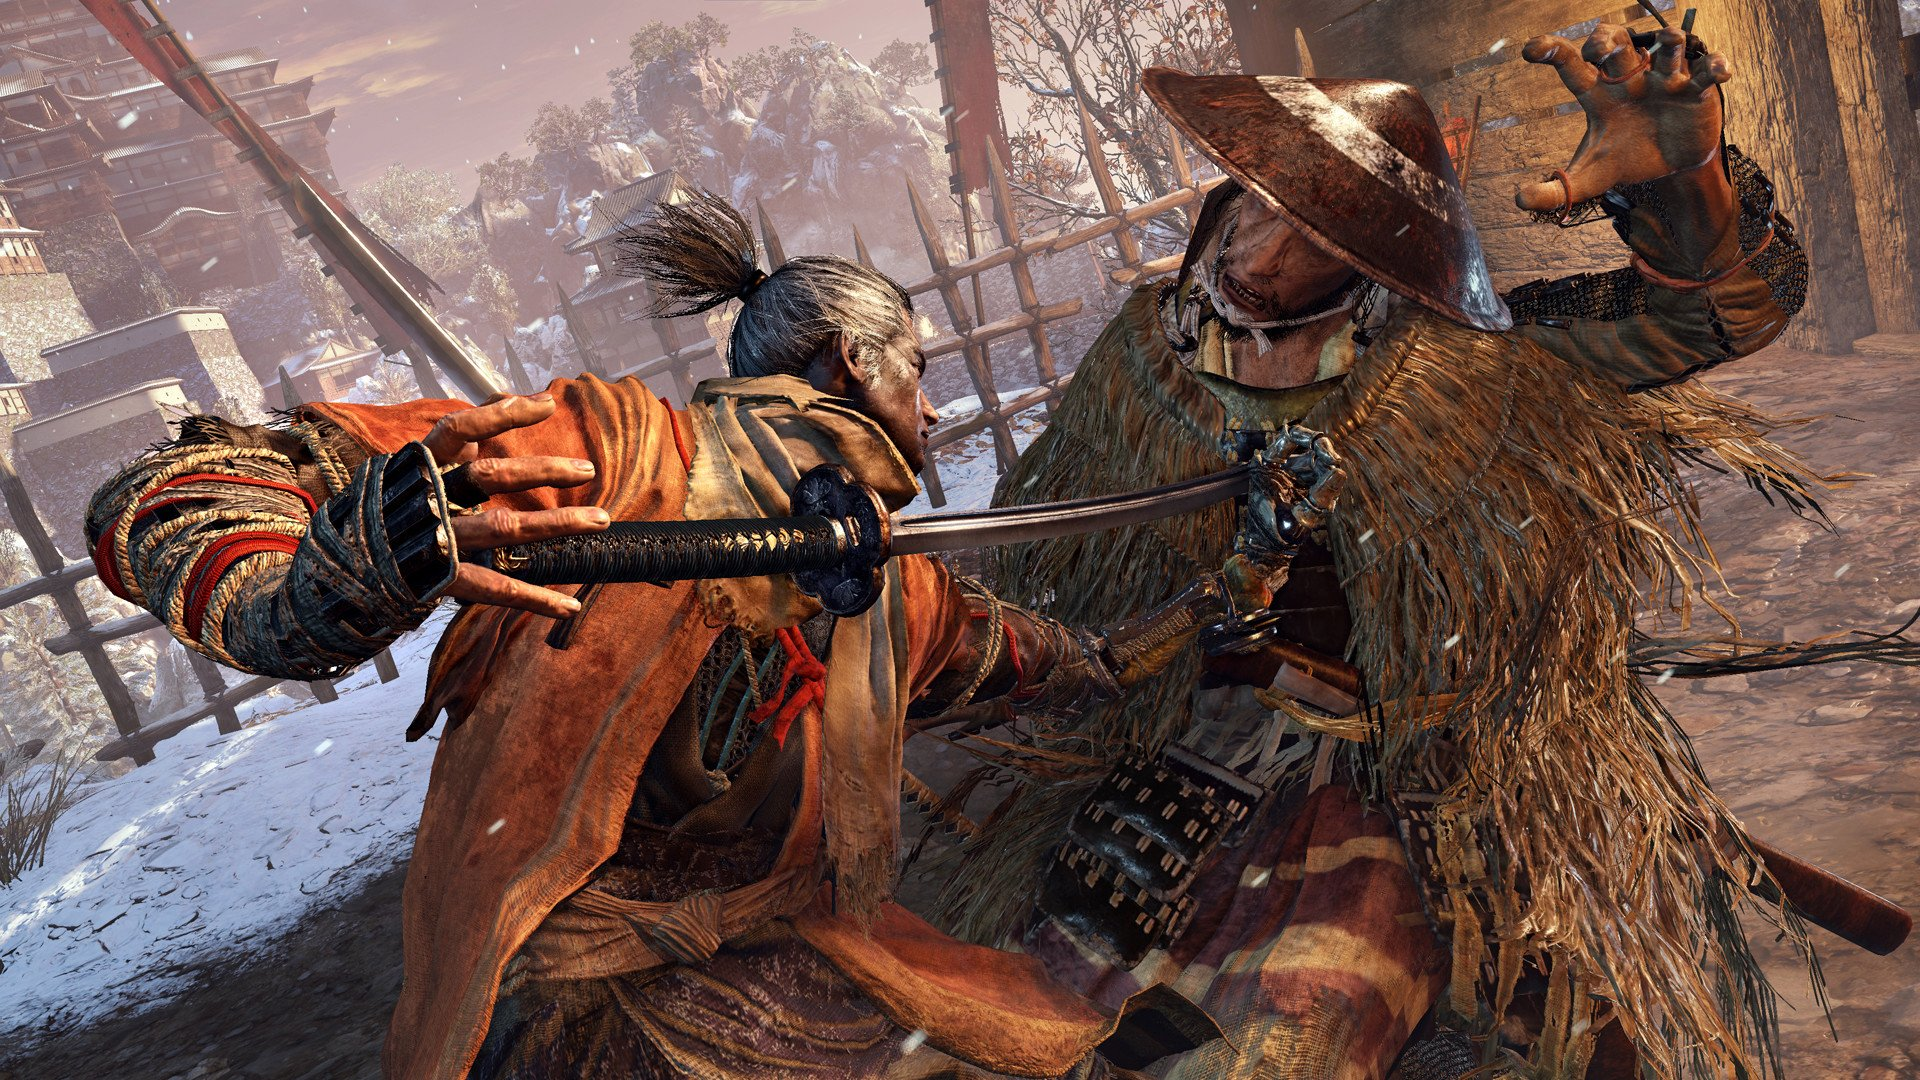 The Hidden Tooth can be acquired by killing Hanbei in Sekiro: Shadows Die Twice.